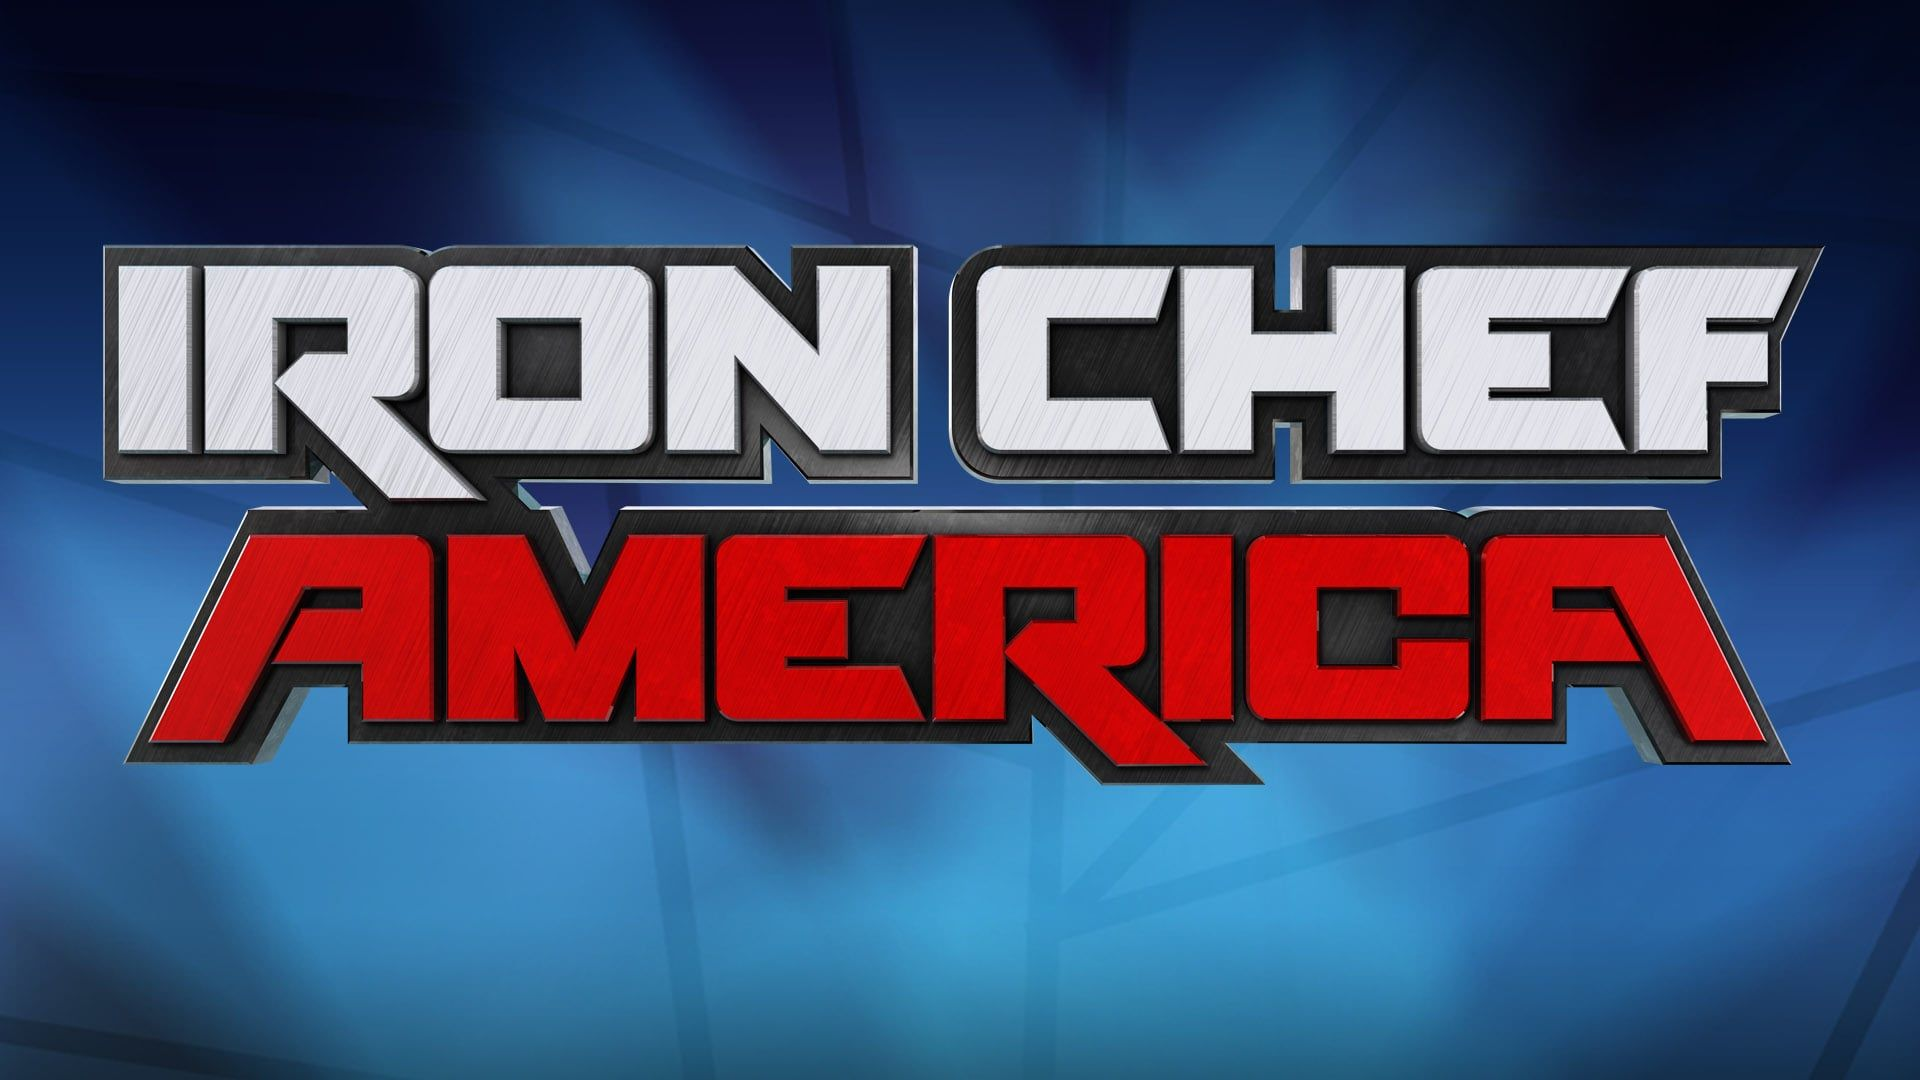 the chairman iron chef diy chair covers pillowcase america where to watch every episode reelgood